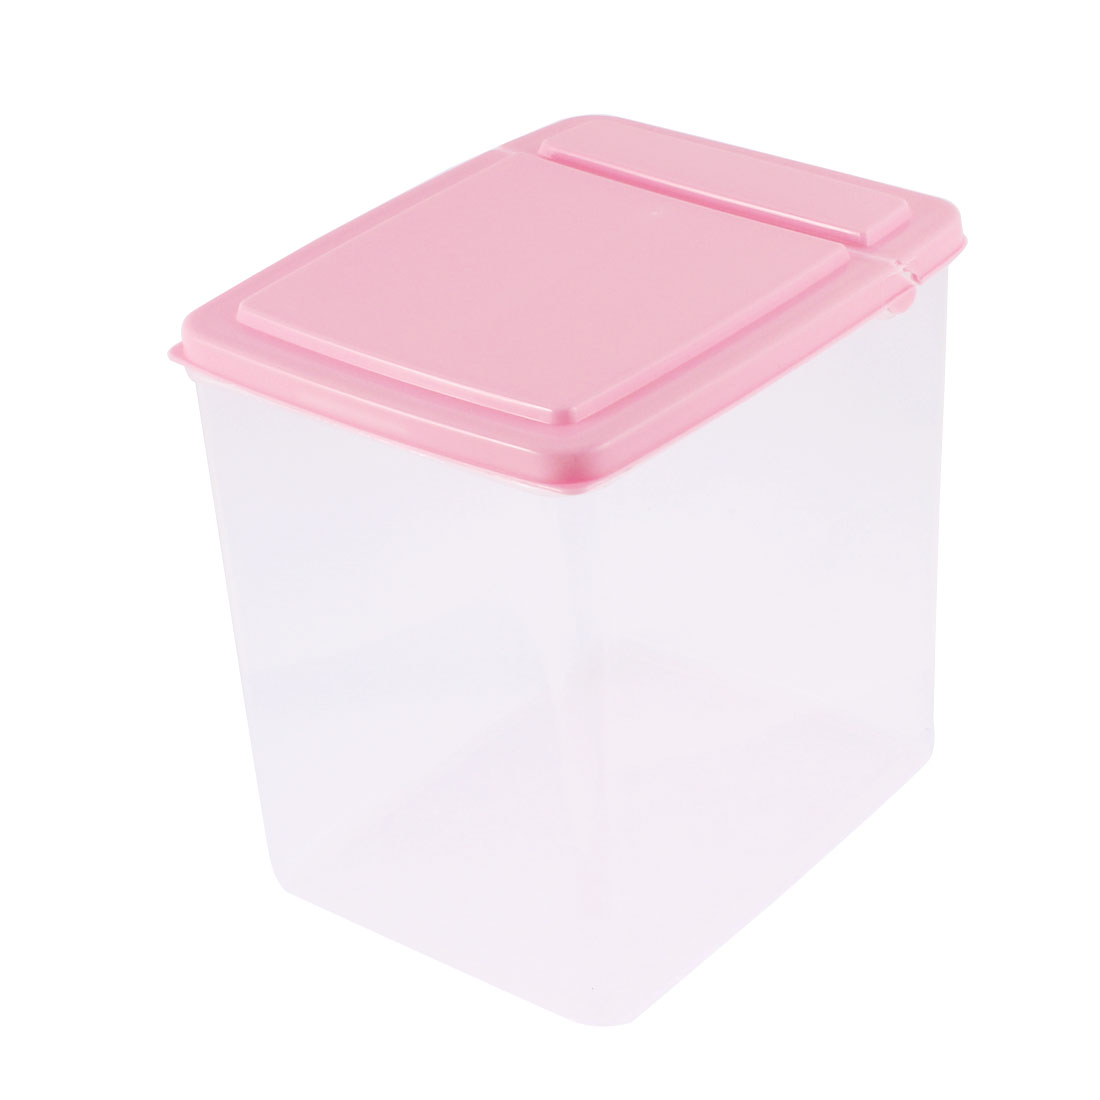 Kitchen Plastic Food Storage Box Container 165mmx125mmx160mm 2.6L Pink